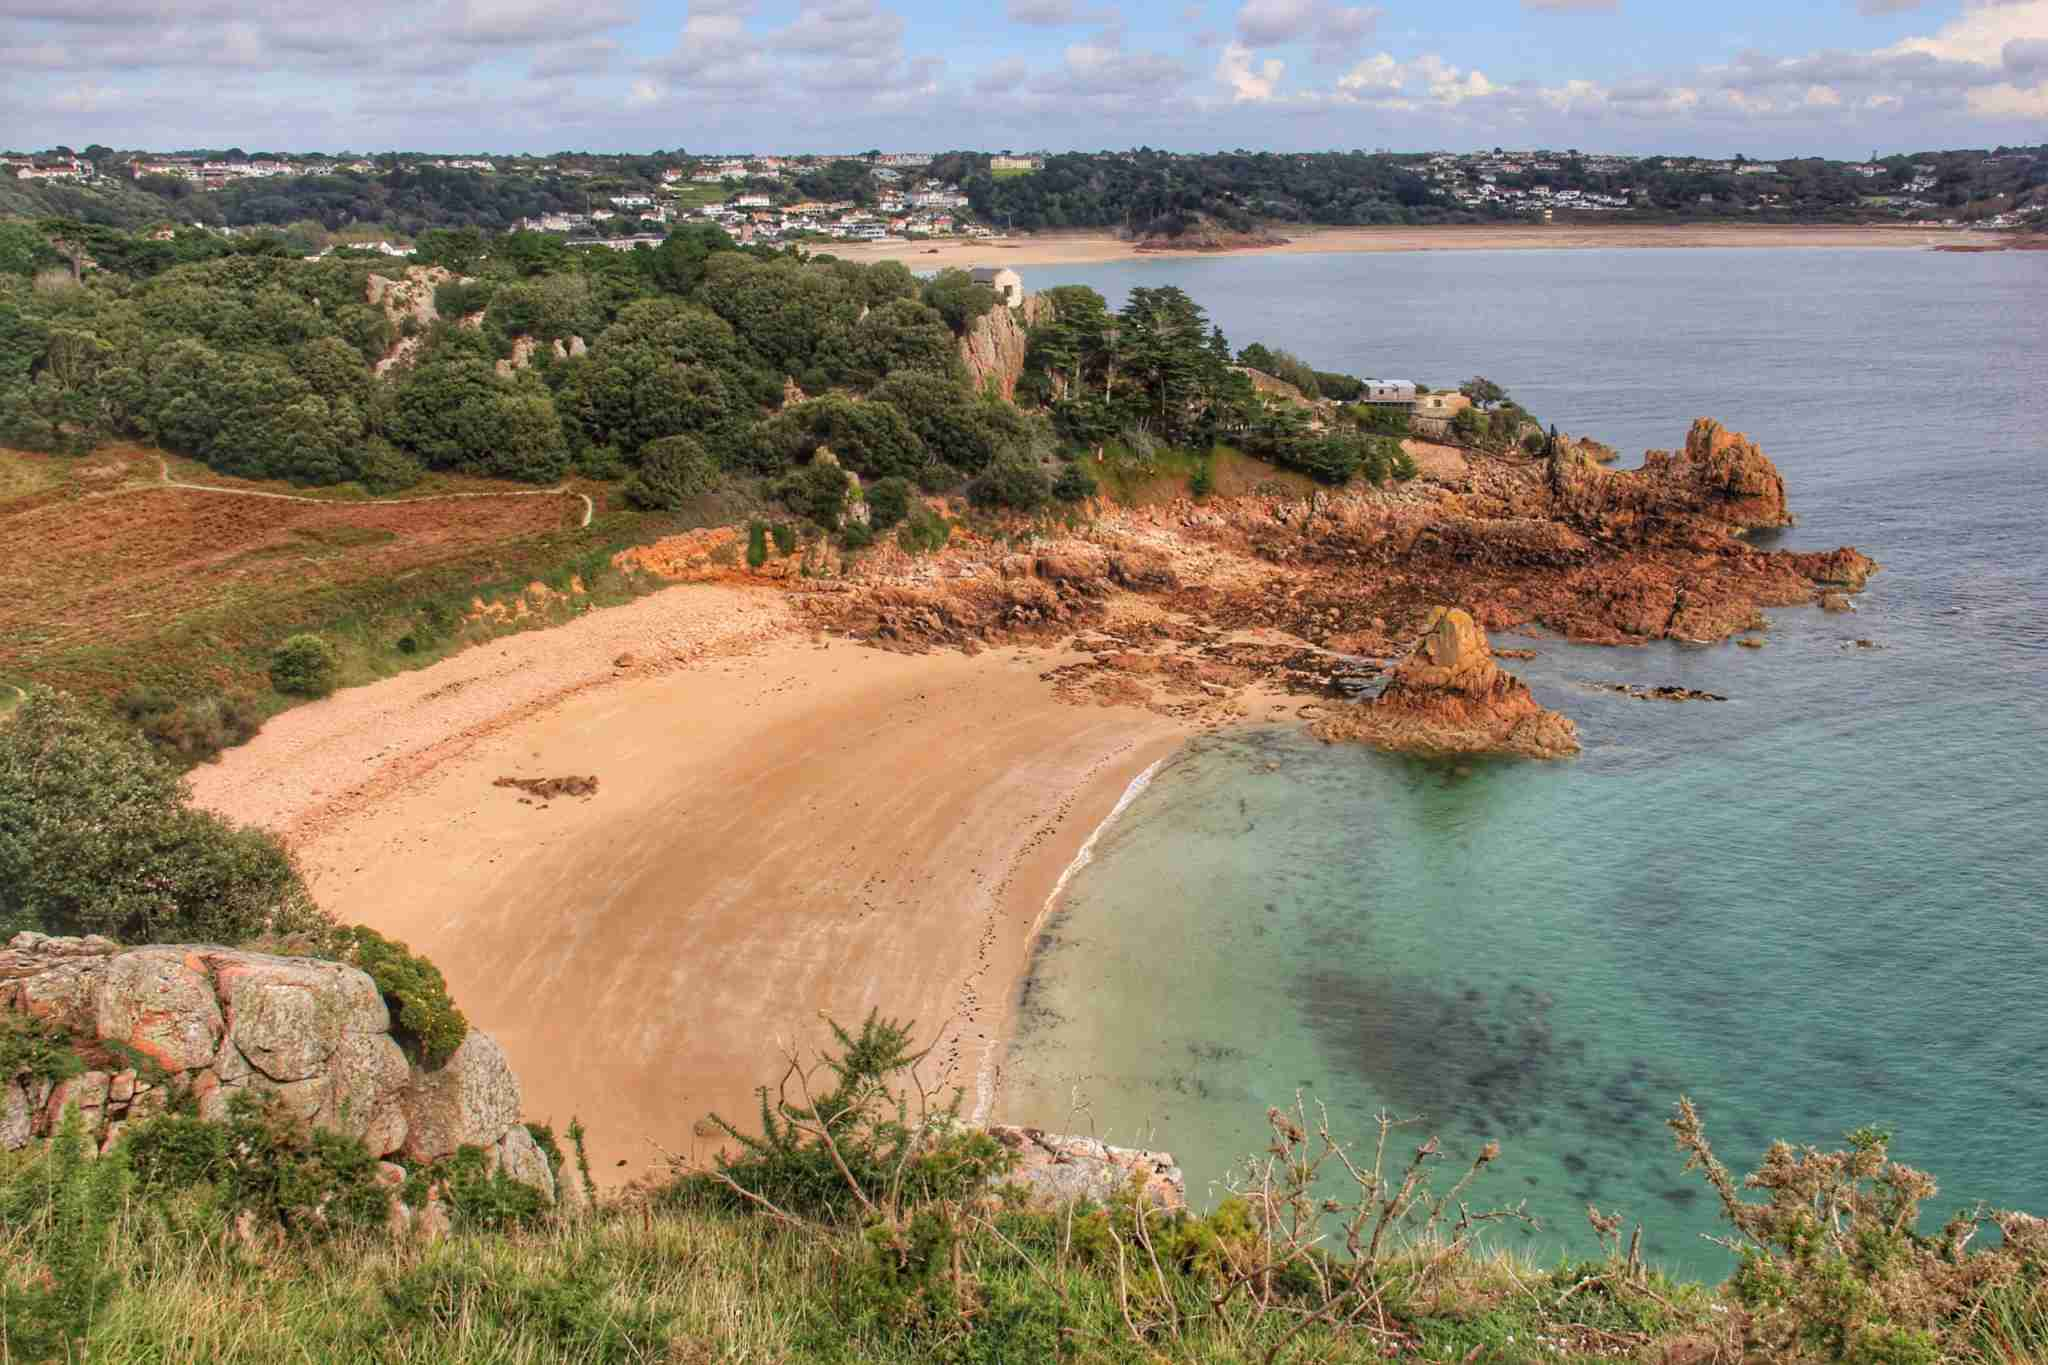 Jersey, St Brelade. (Photo by Gary Laspa / EyeEm / Getty Images)